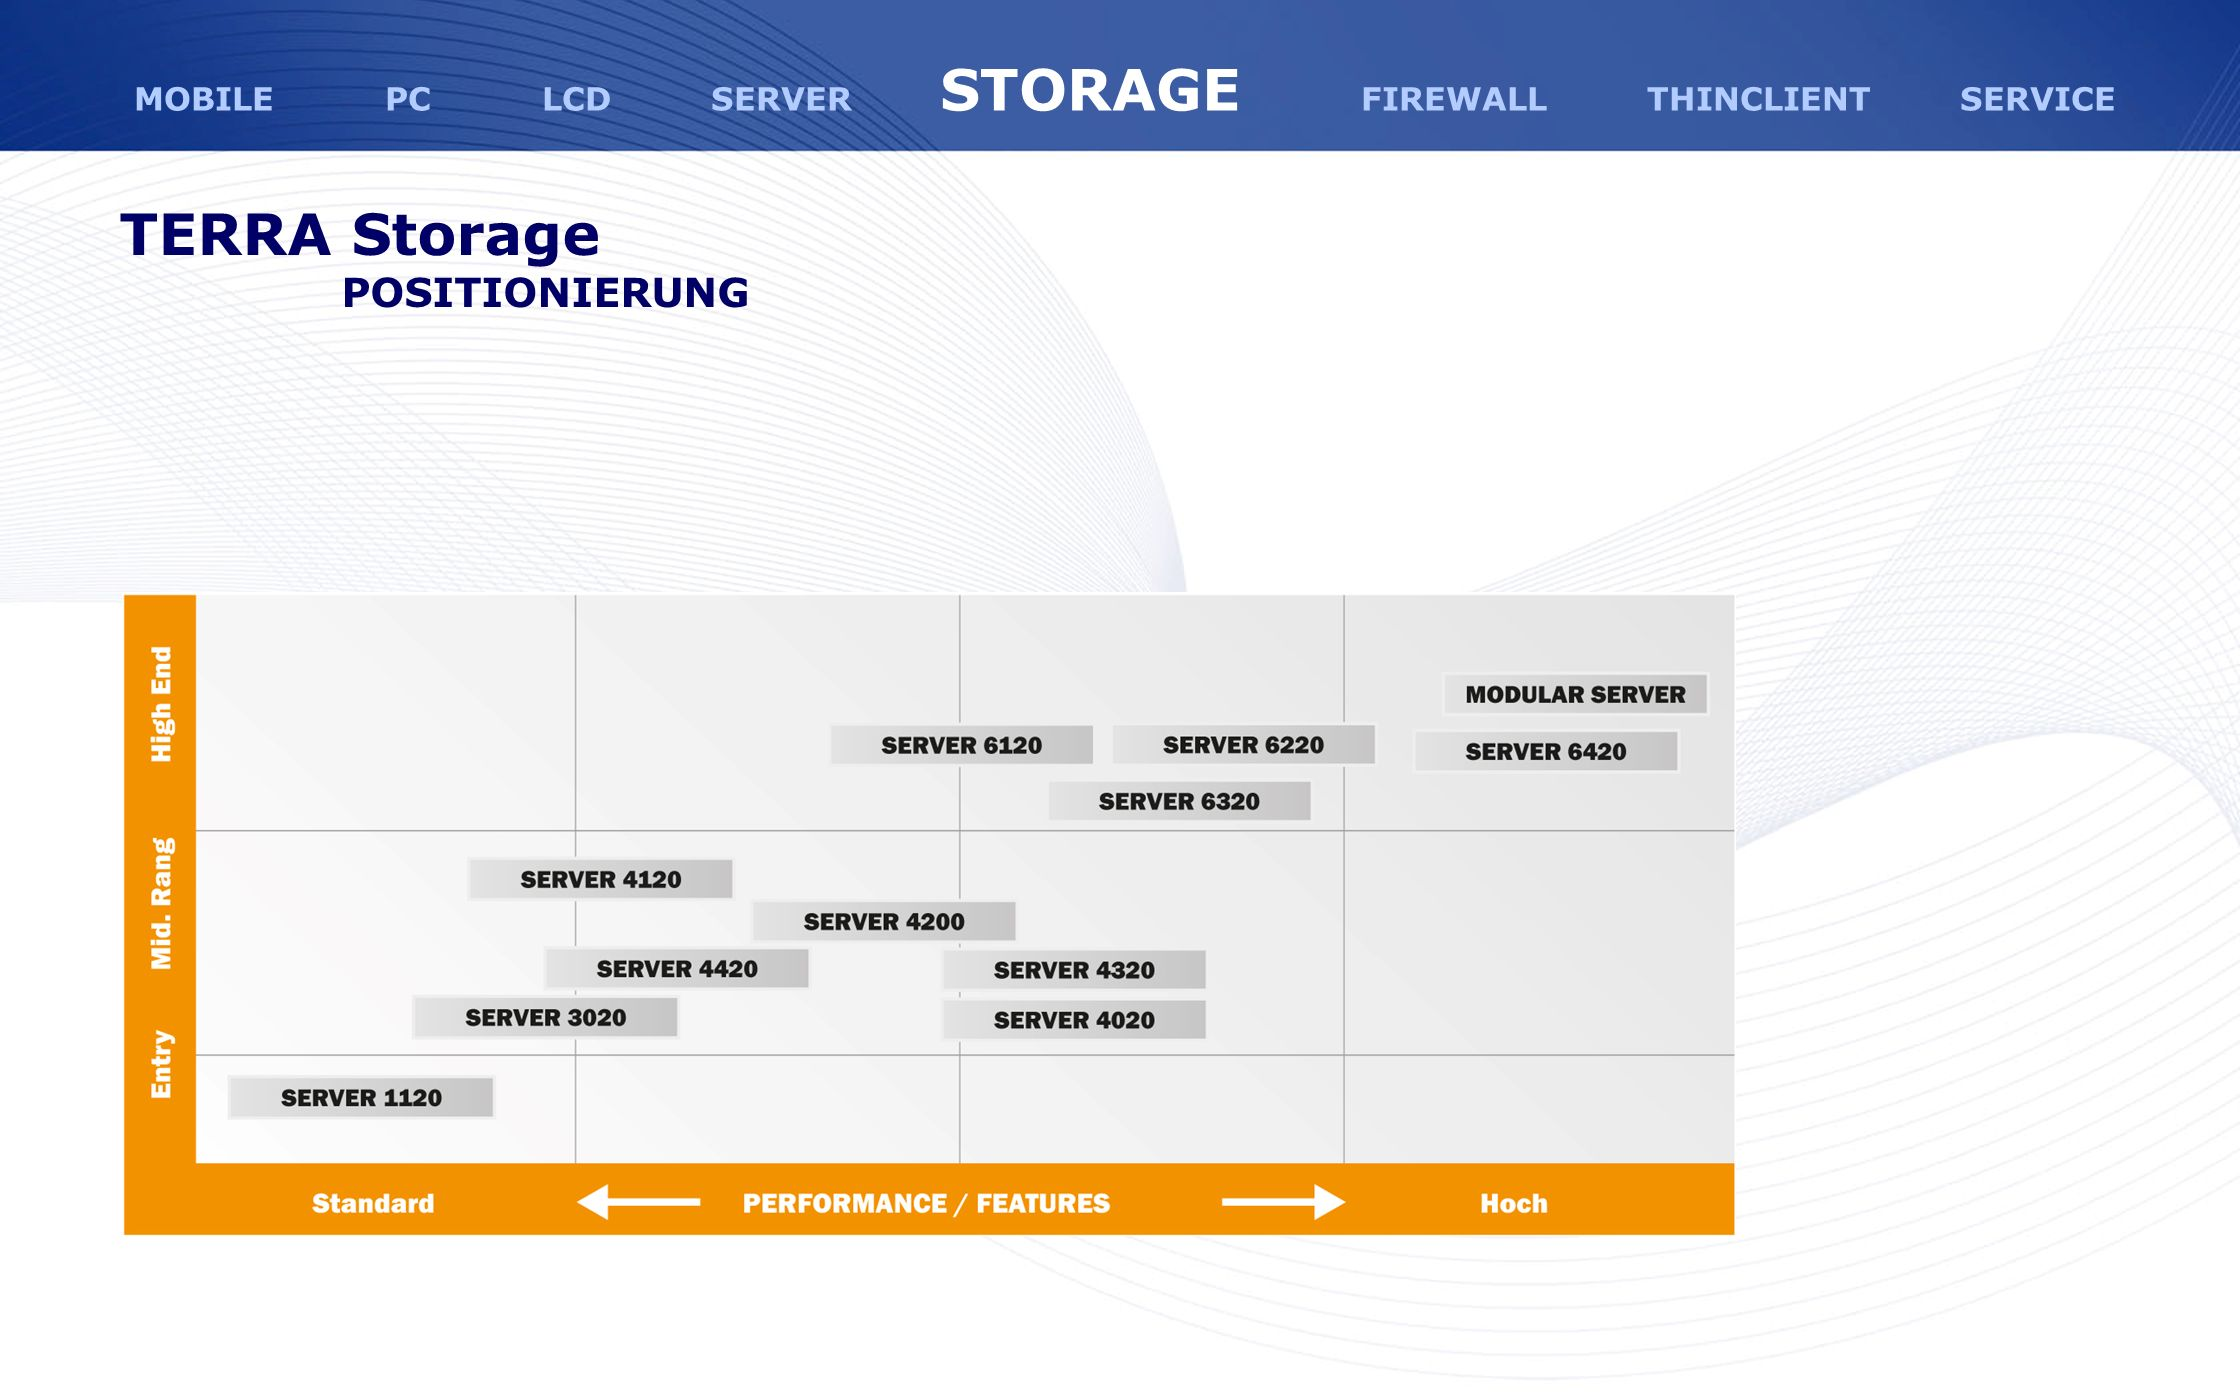 TERRA Storage POSITIONIERUNG